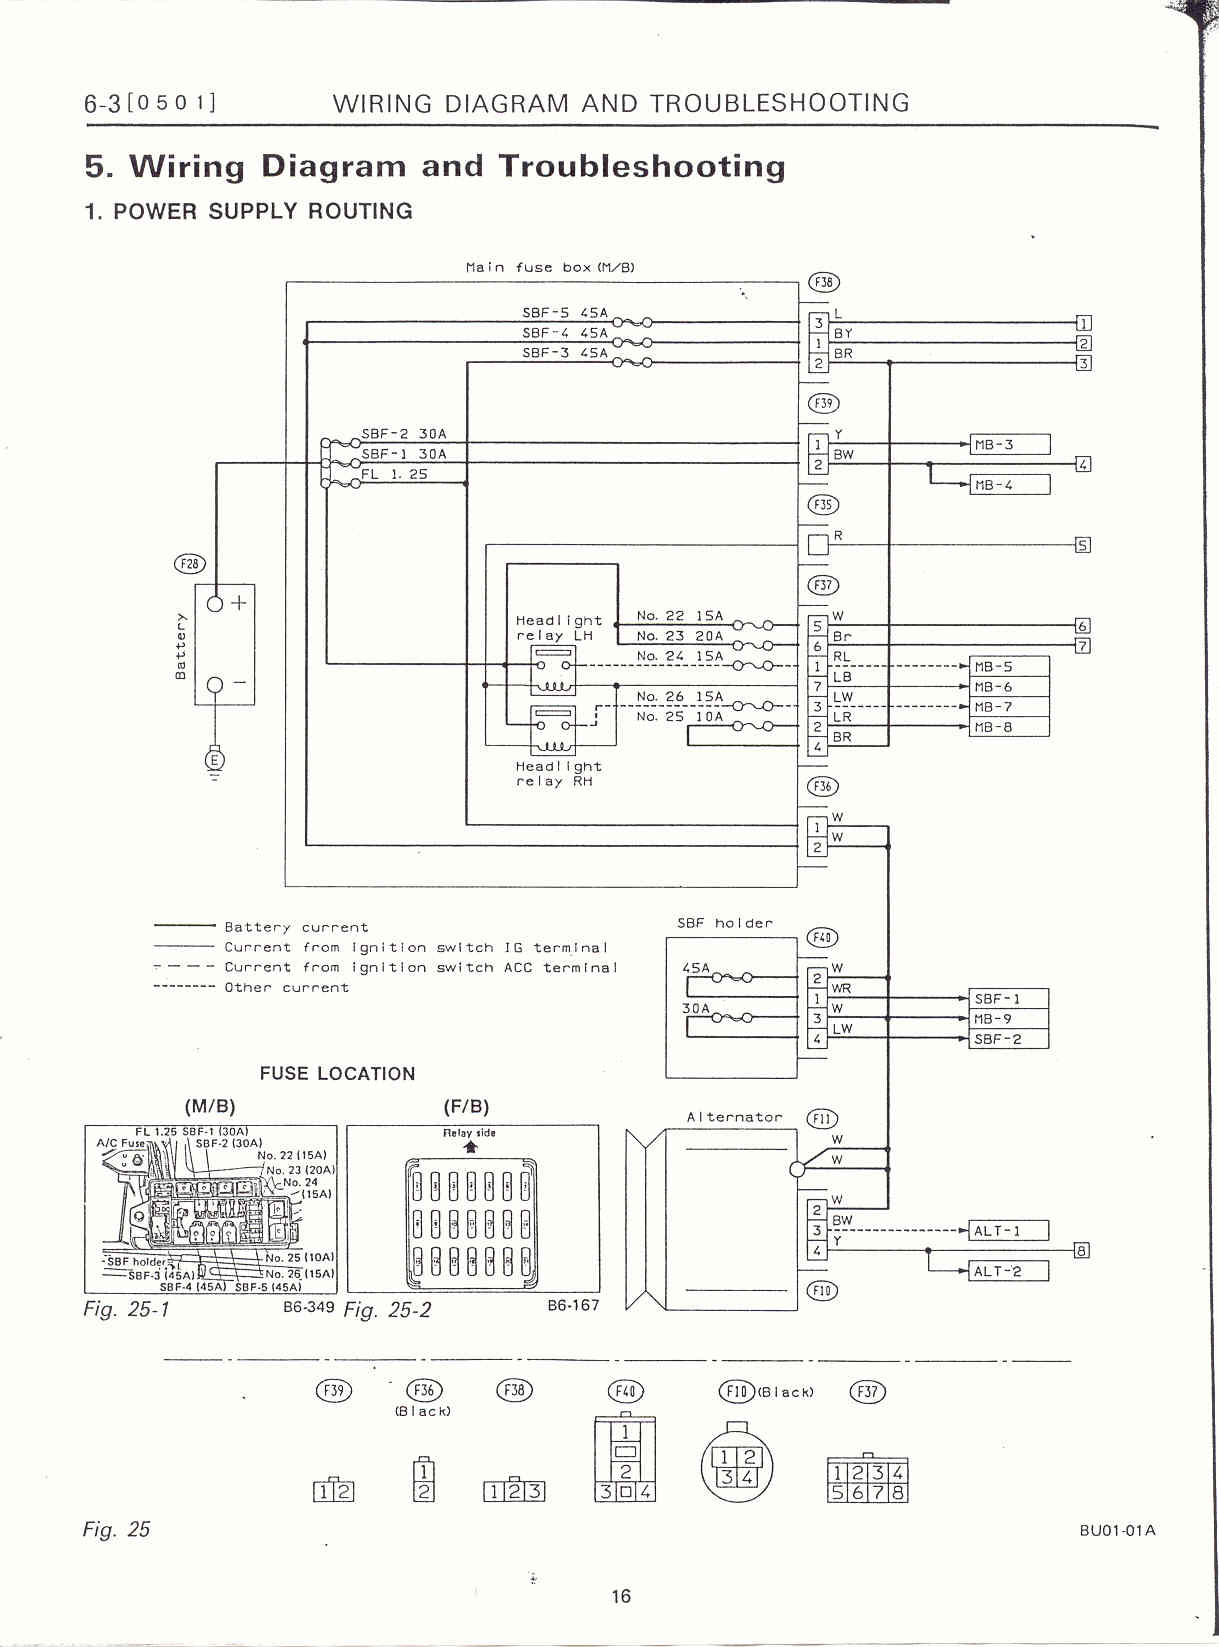 Subaru Impreza Ignition Wiring Diagram Guide And Troubleshooting 2006 Radio Todays Rh 17 12 1813weddingbarn Com